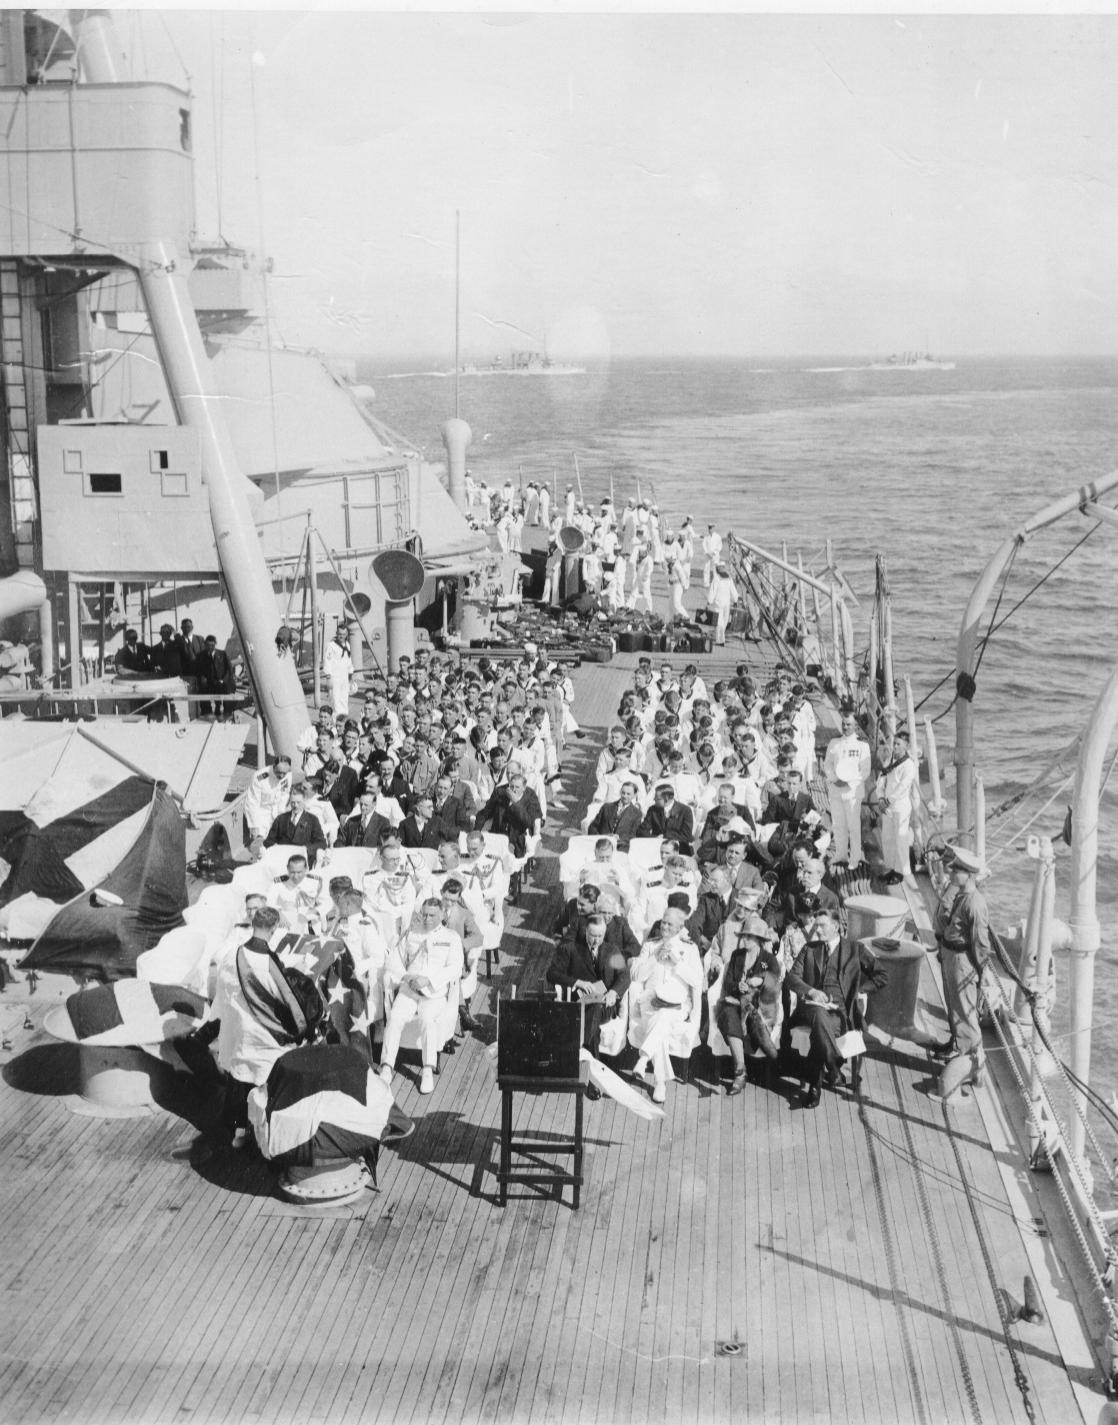 The Coolidges en route to Havana to attend the Sixth Pan American Conference, January 1928. They can be seen seated on the front row to the right on the deck of the USS Texas.